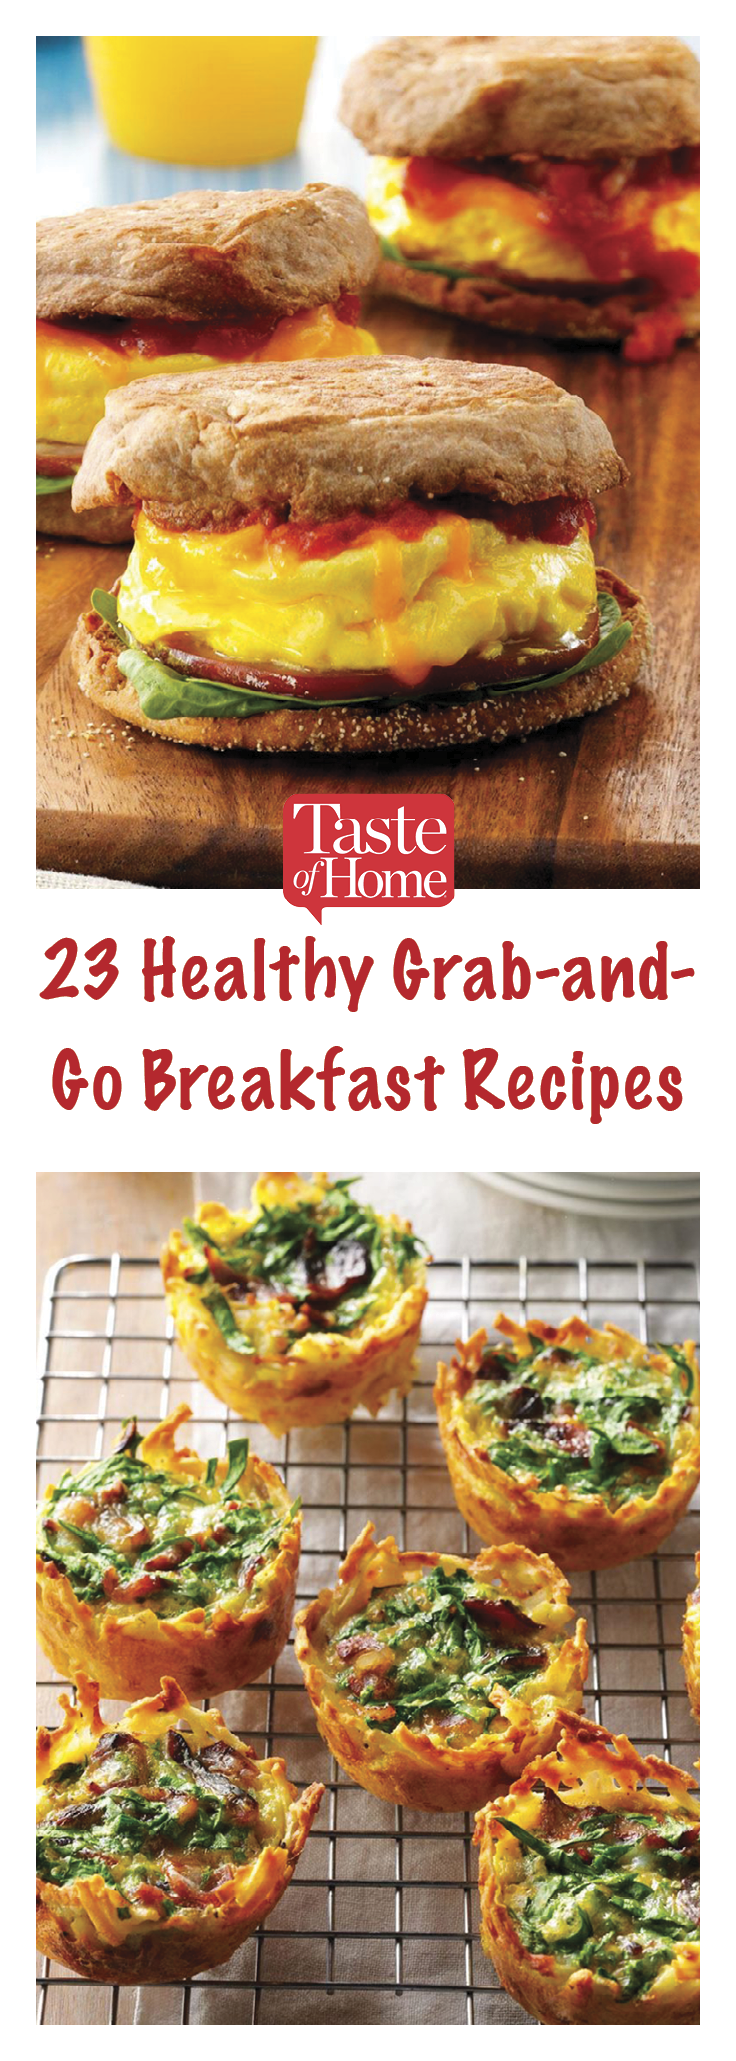 28 Healthy Grab-and-Go Breakfast Recipes images